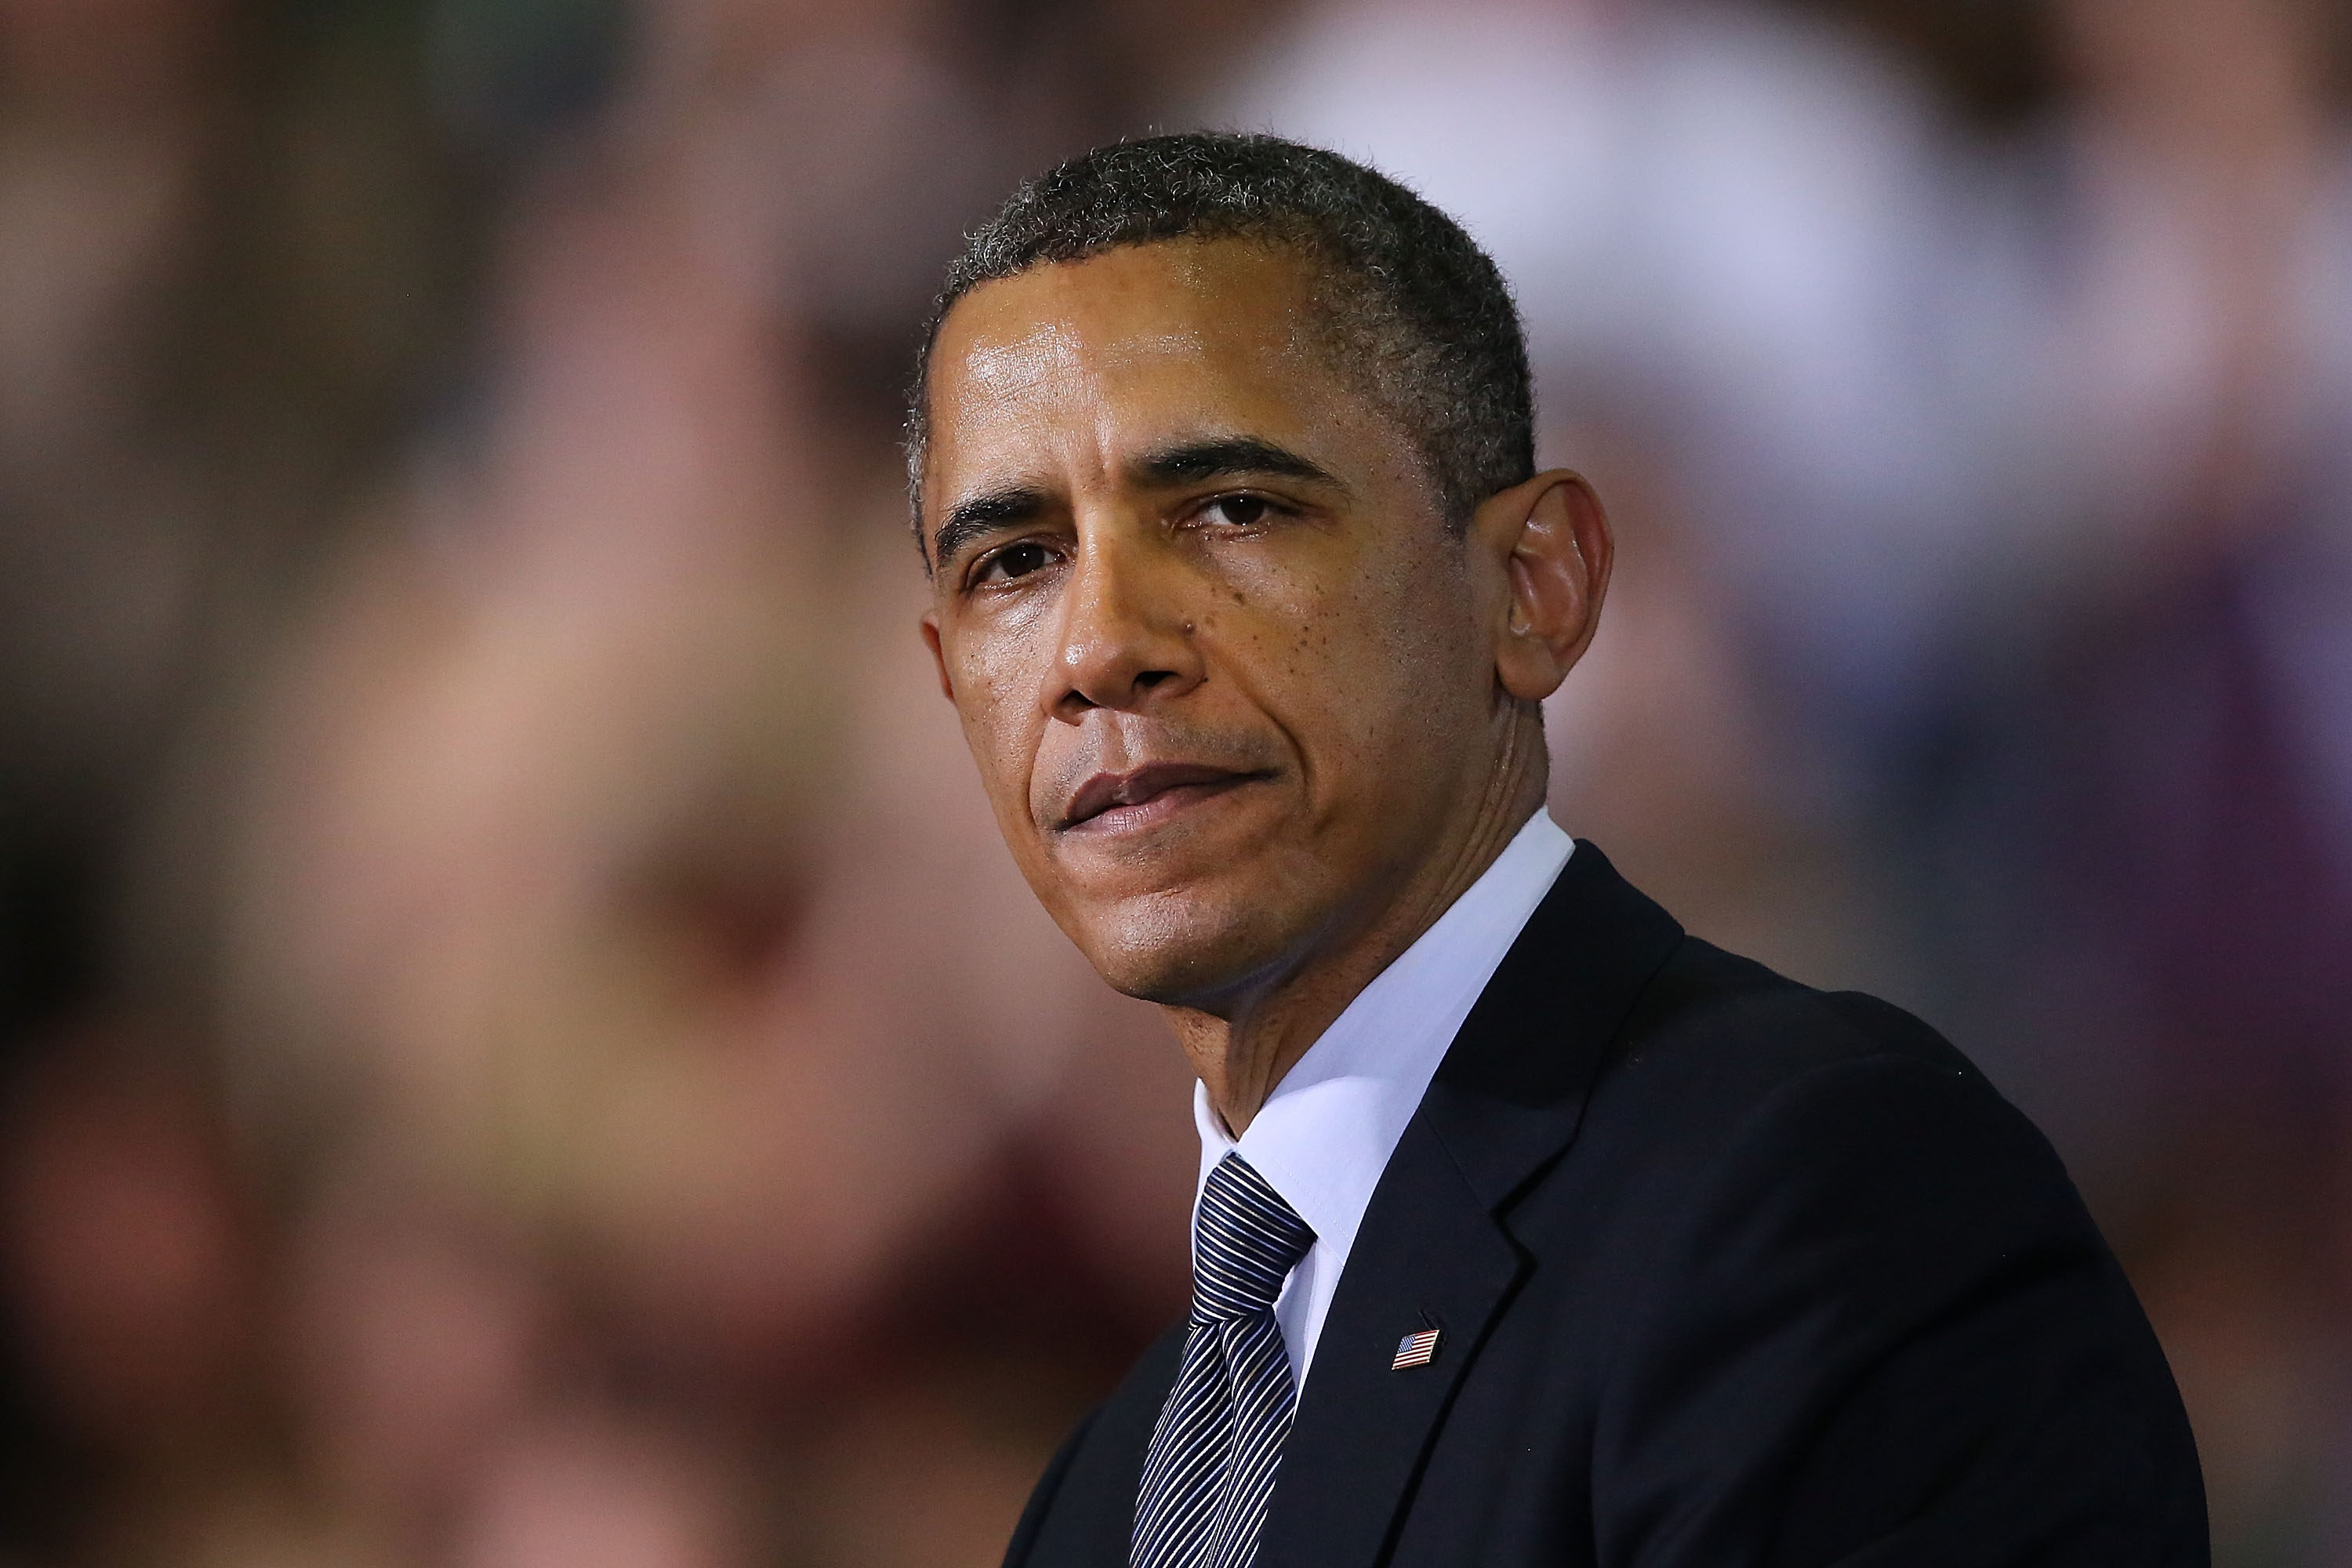 Obama Travels To Connecticut To Advocate Passing Of Stricter Gun Laws